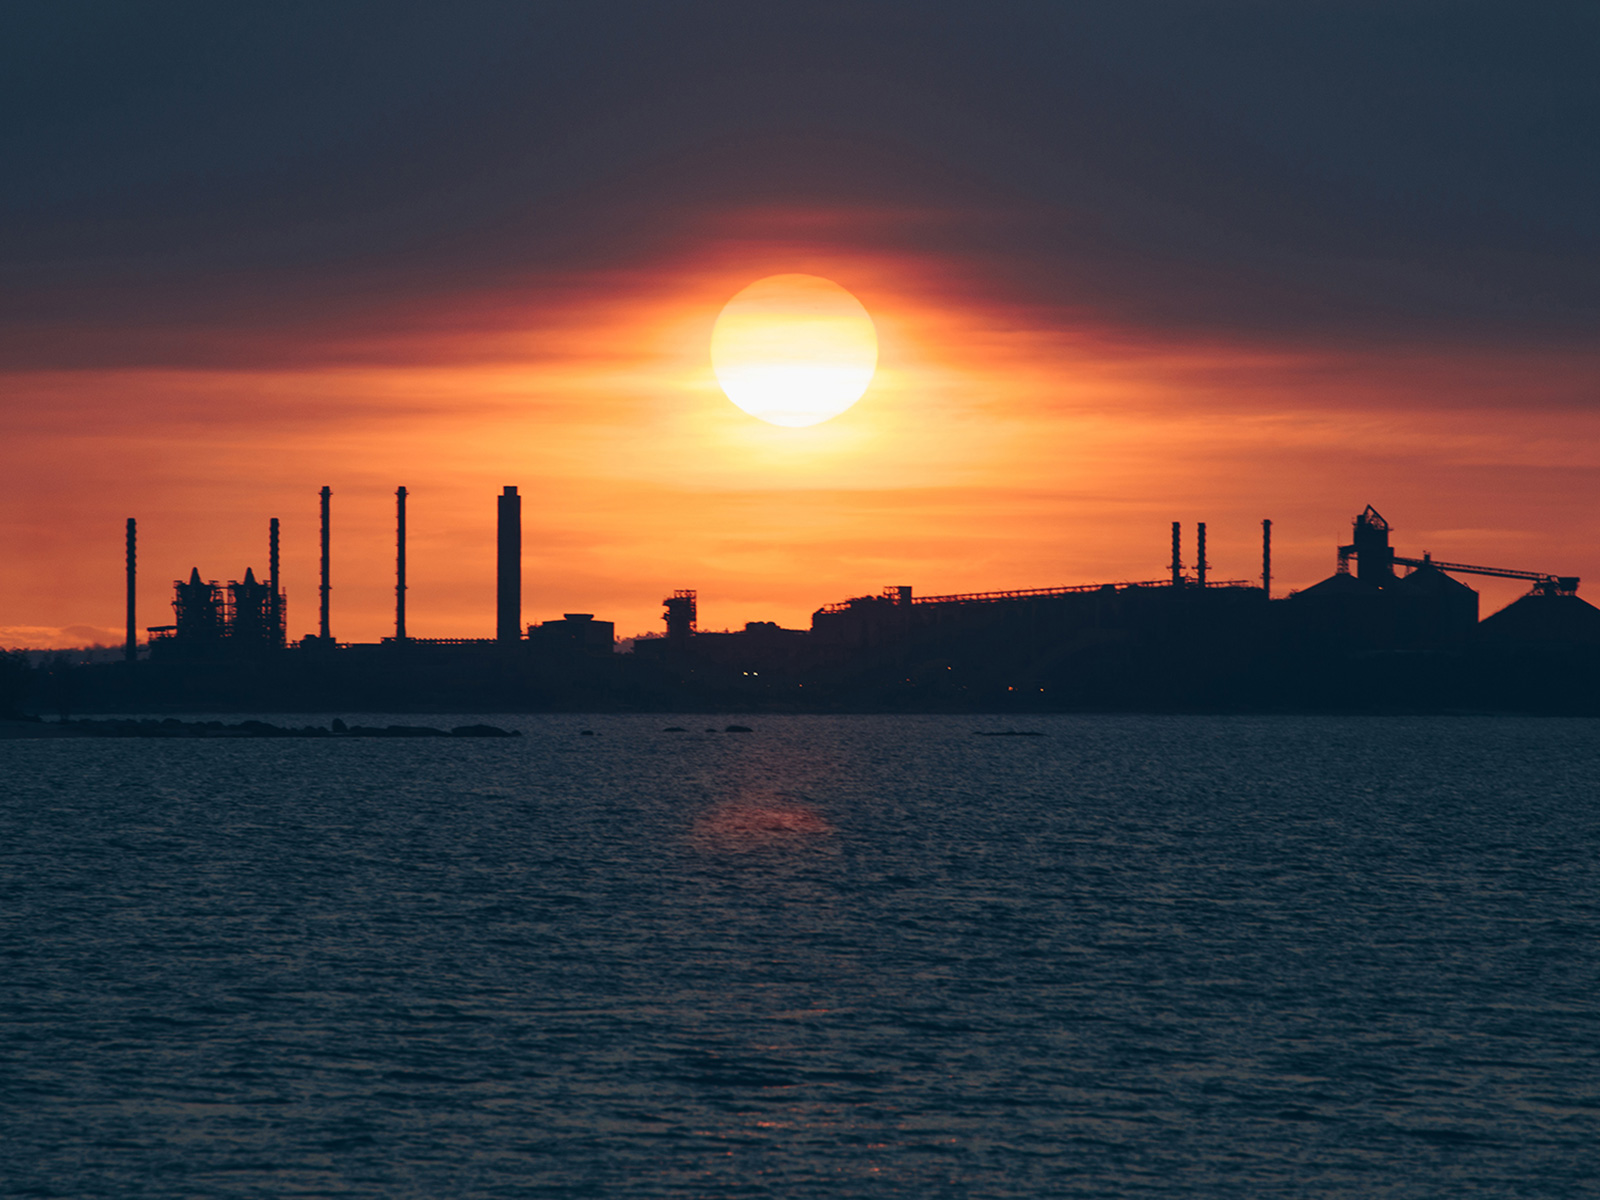 Sun setting over a power station